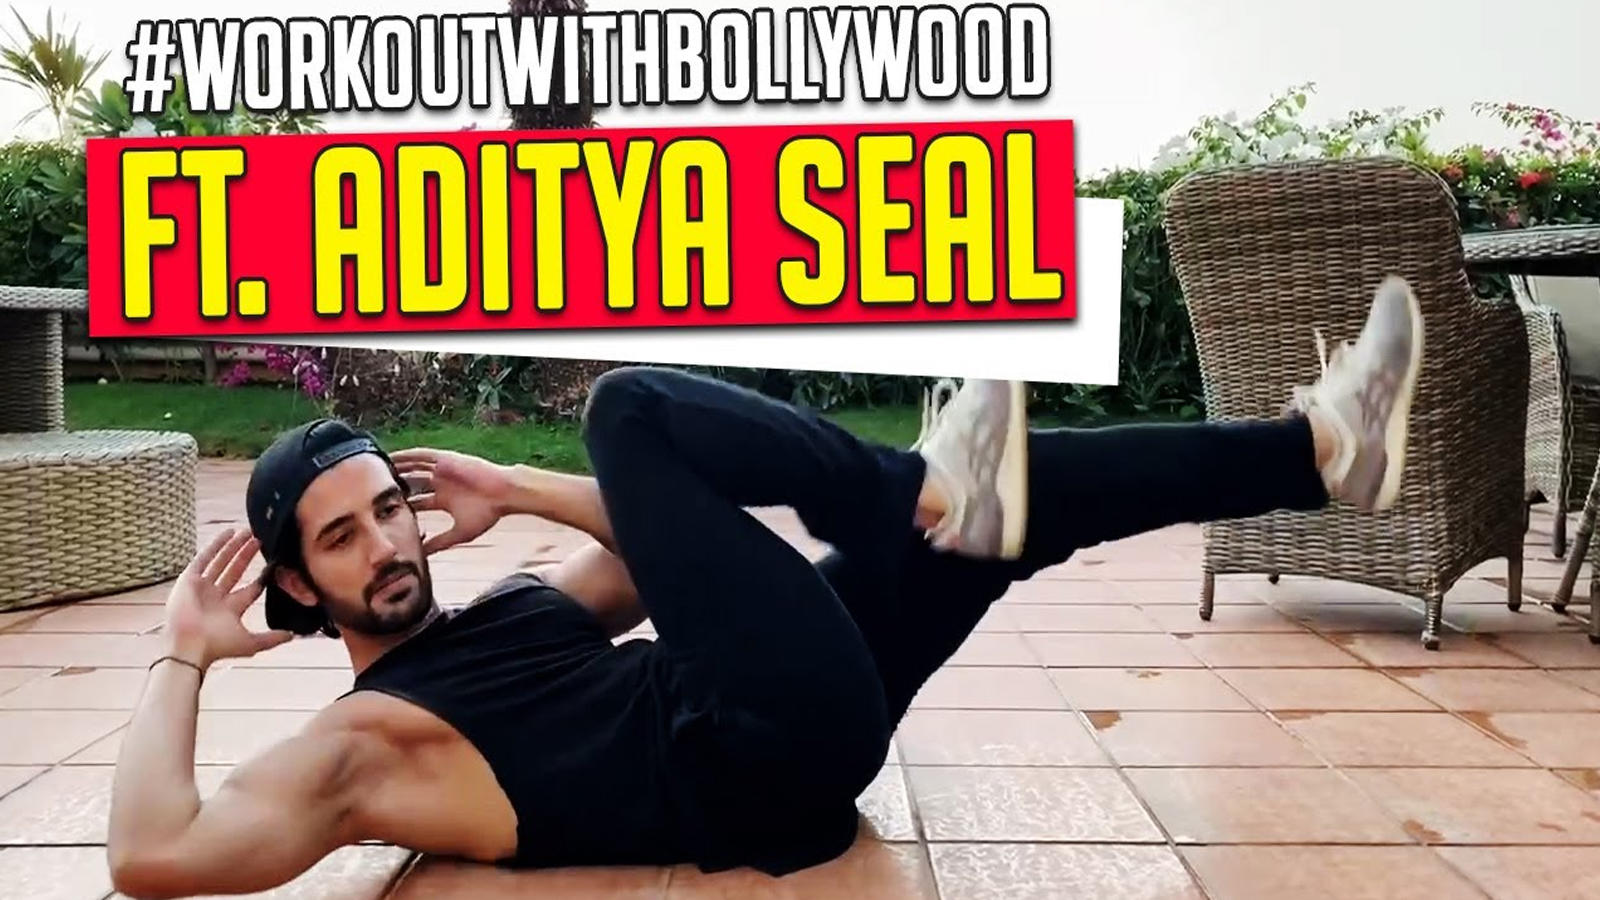 Workout With Bollywood ft. Aditya Seal   Workout routine   Fitness tips   COVID-19   ETimes   Hindi Movie News – Bollywood – Times of India